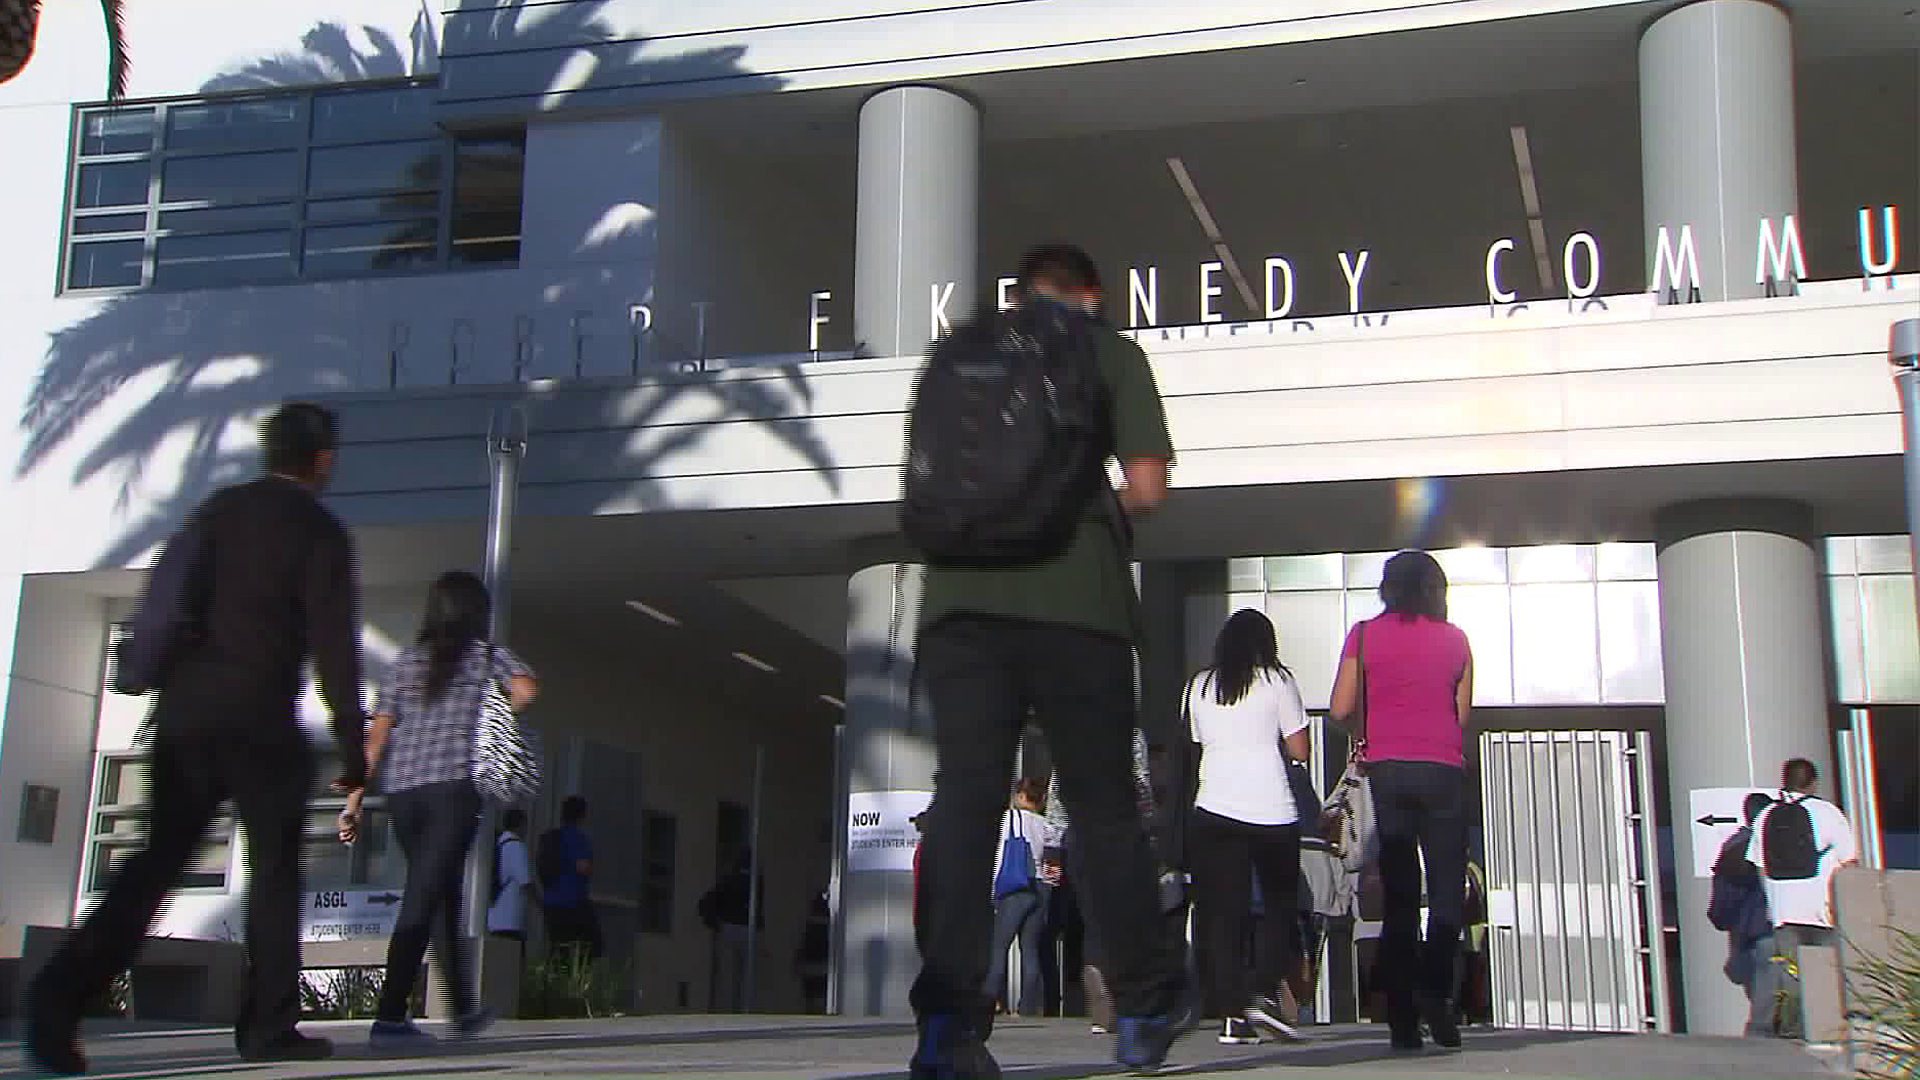 Students head to class at the Robert F. Kennedy Community Schools in Los Angeles' Koreatown in this file photo. (Credit: KTLA)